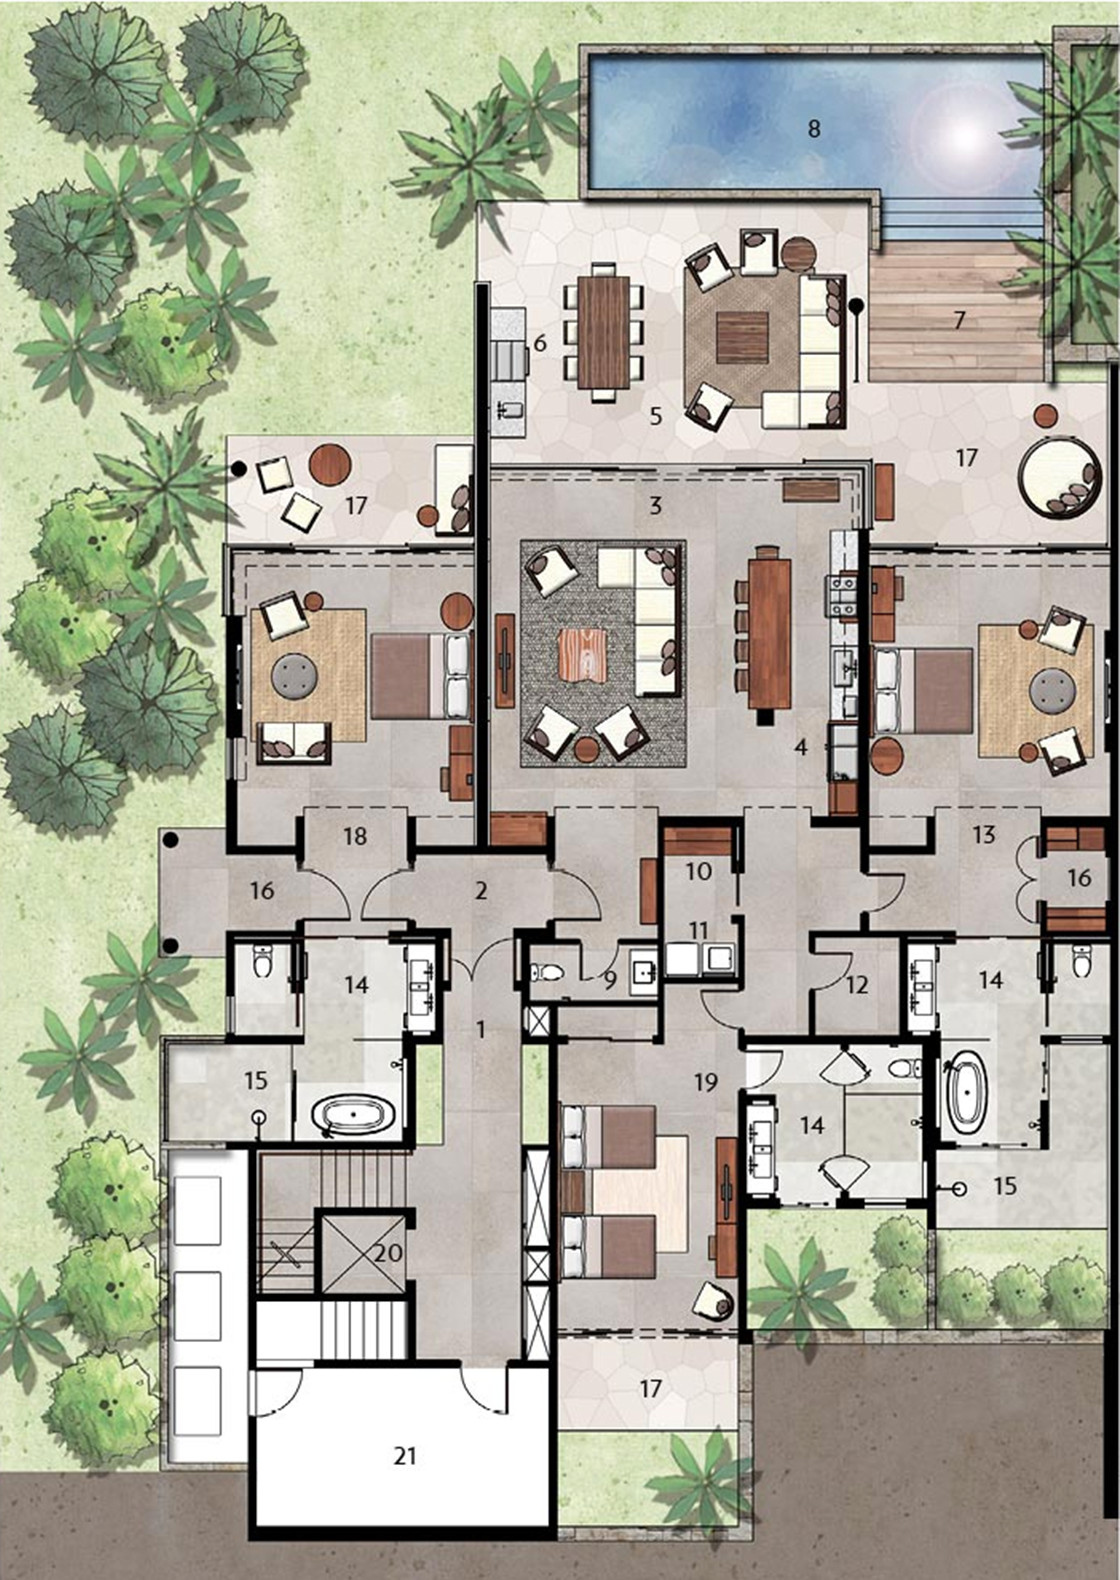 Los cabos luxury villas floor plans chileno bay resort Plans for villas